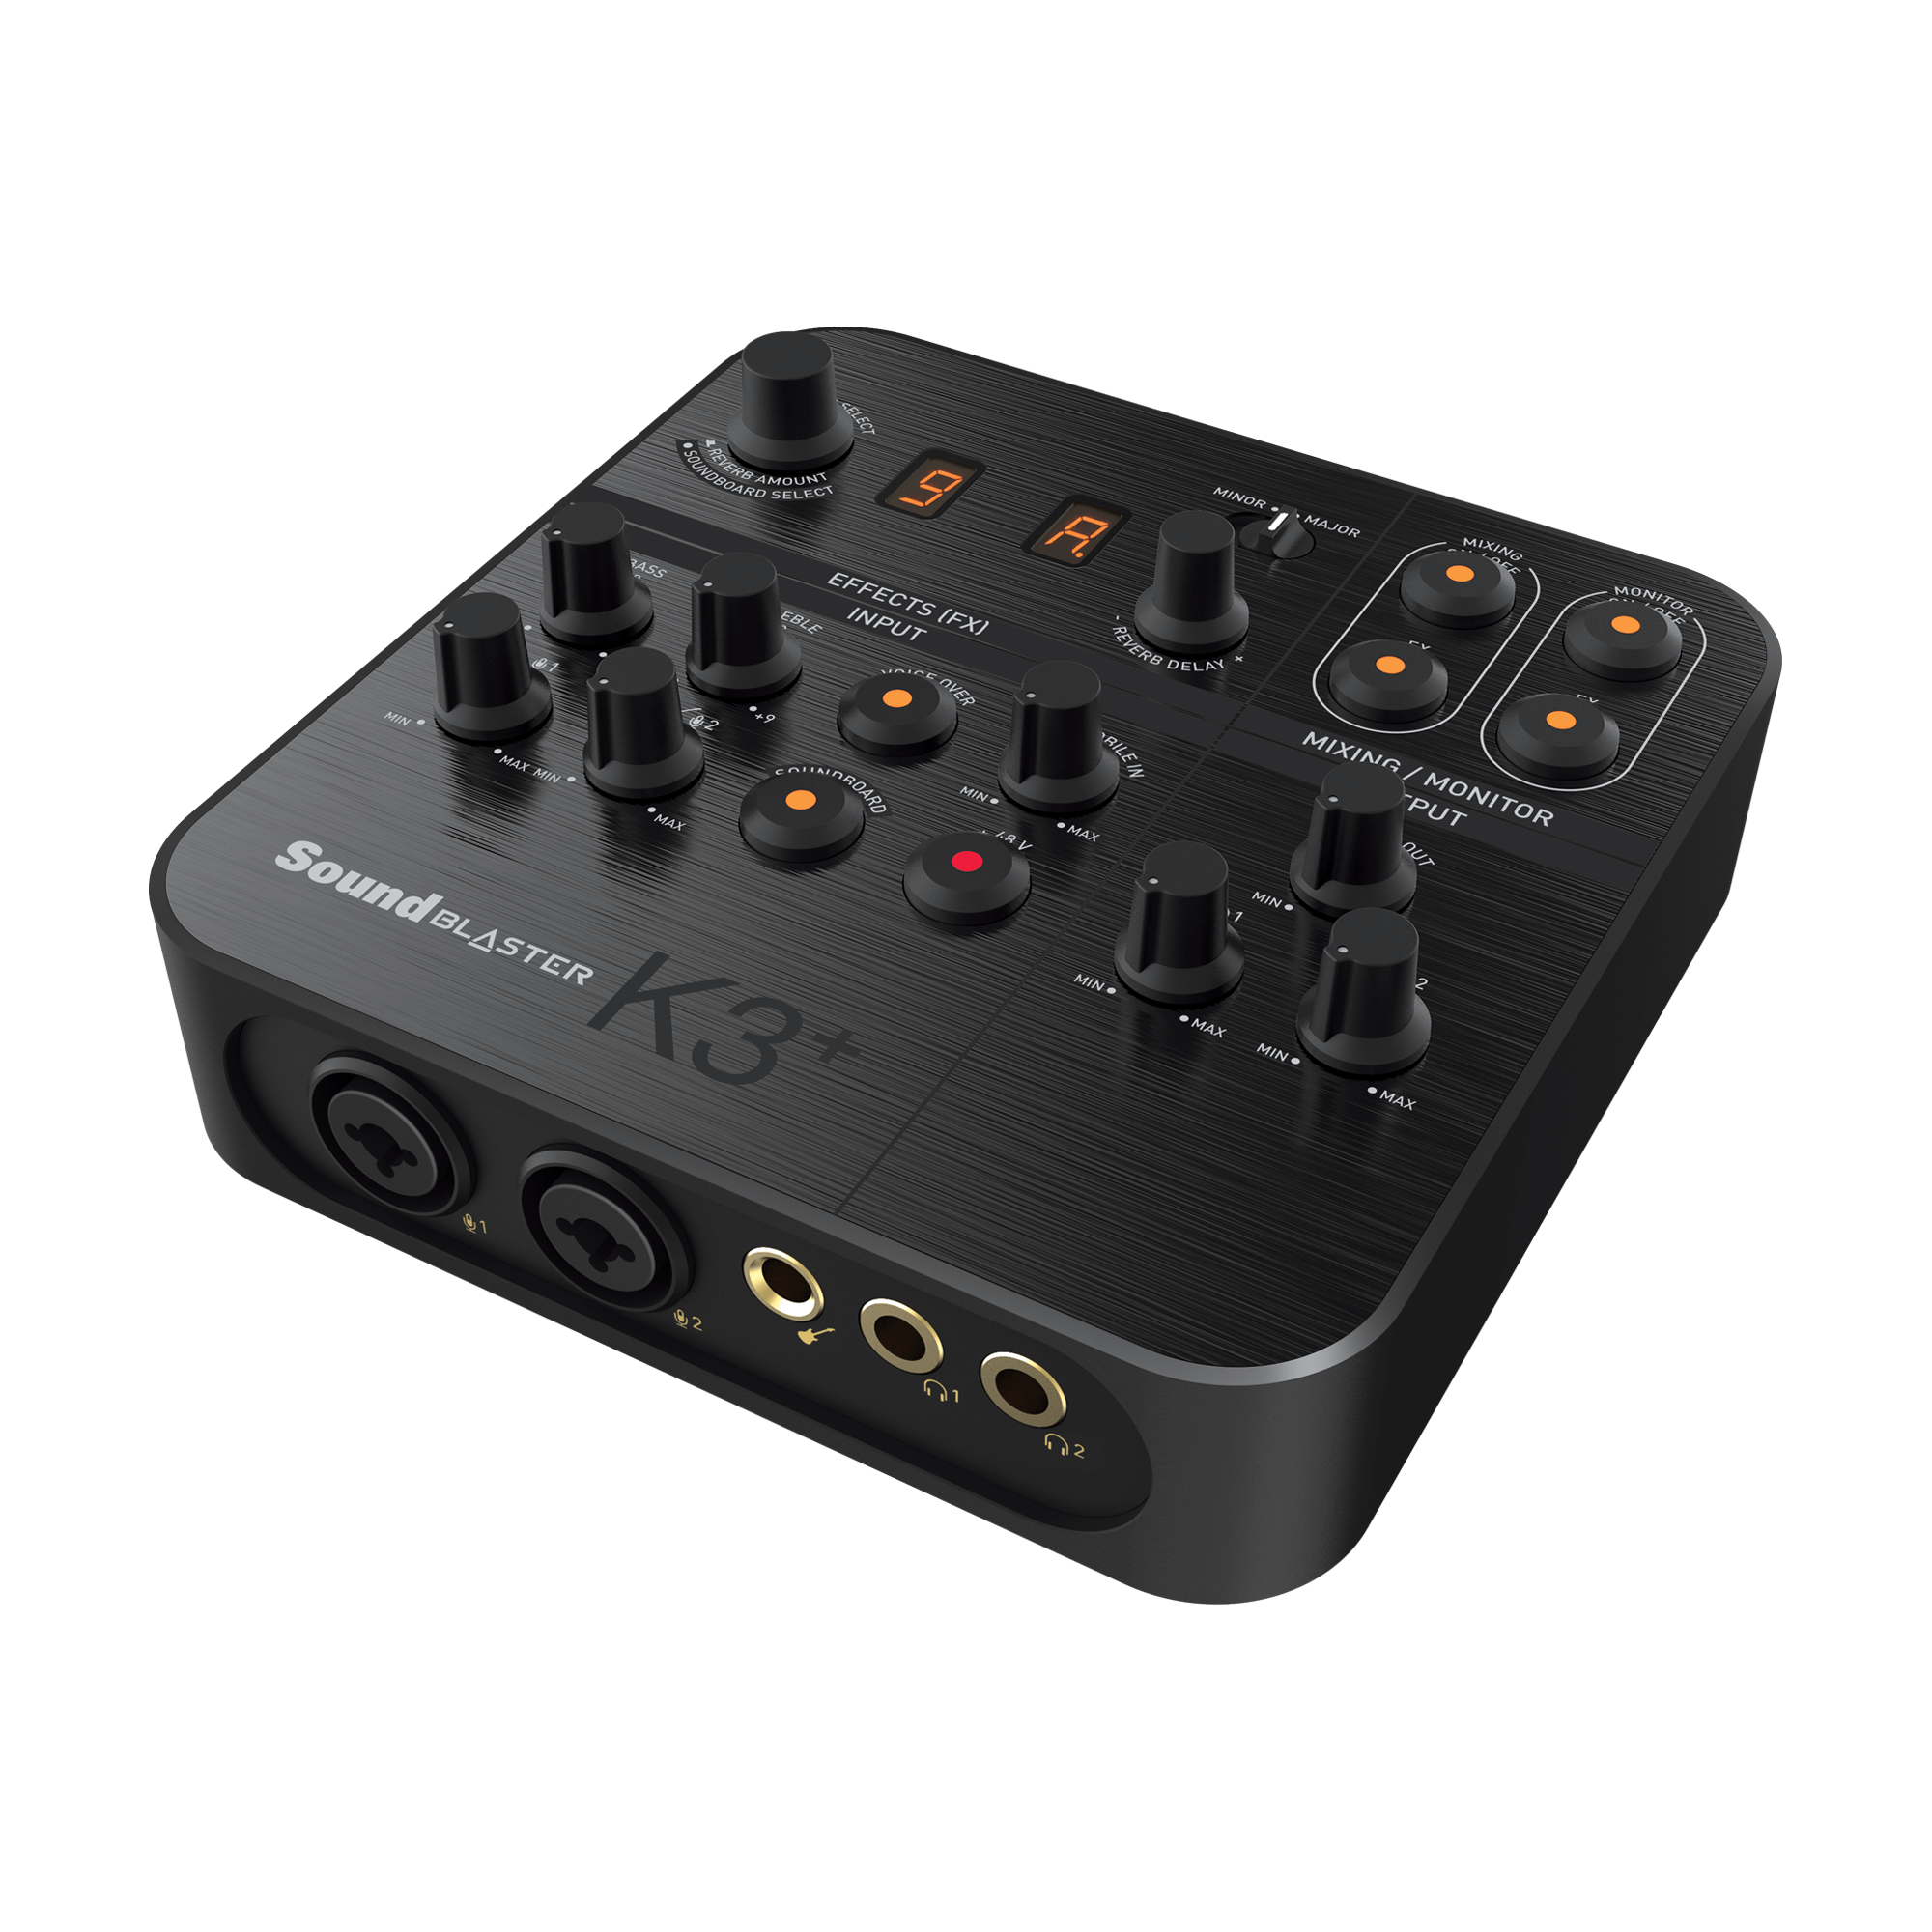 Bluetooth USB External Audio Sound Card for Live Sound Mixing Broadcast Record